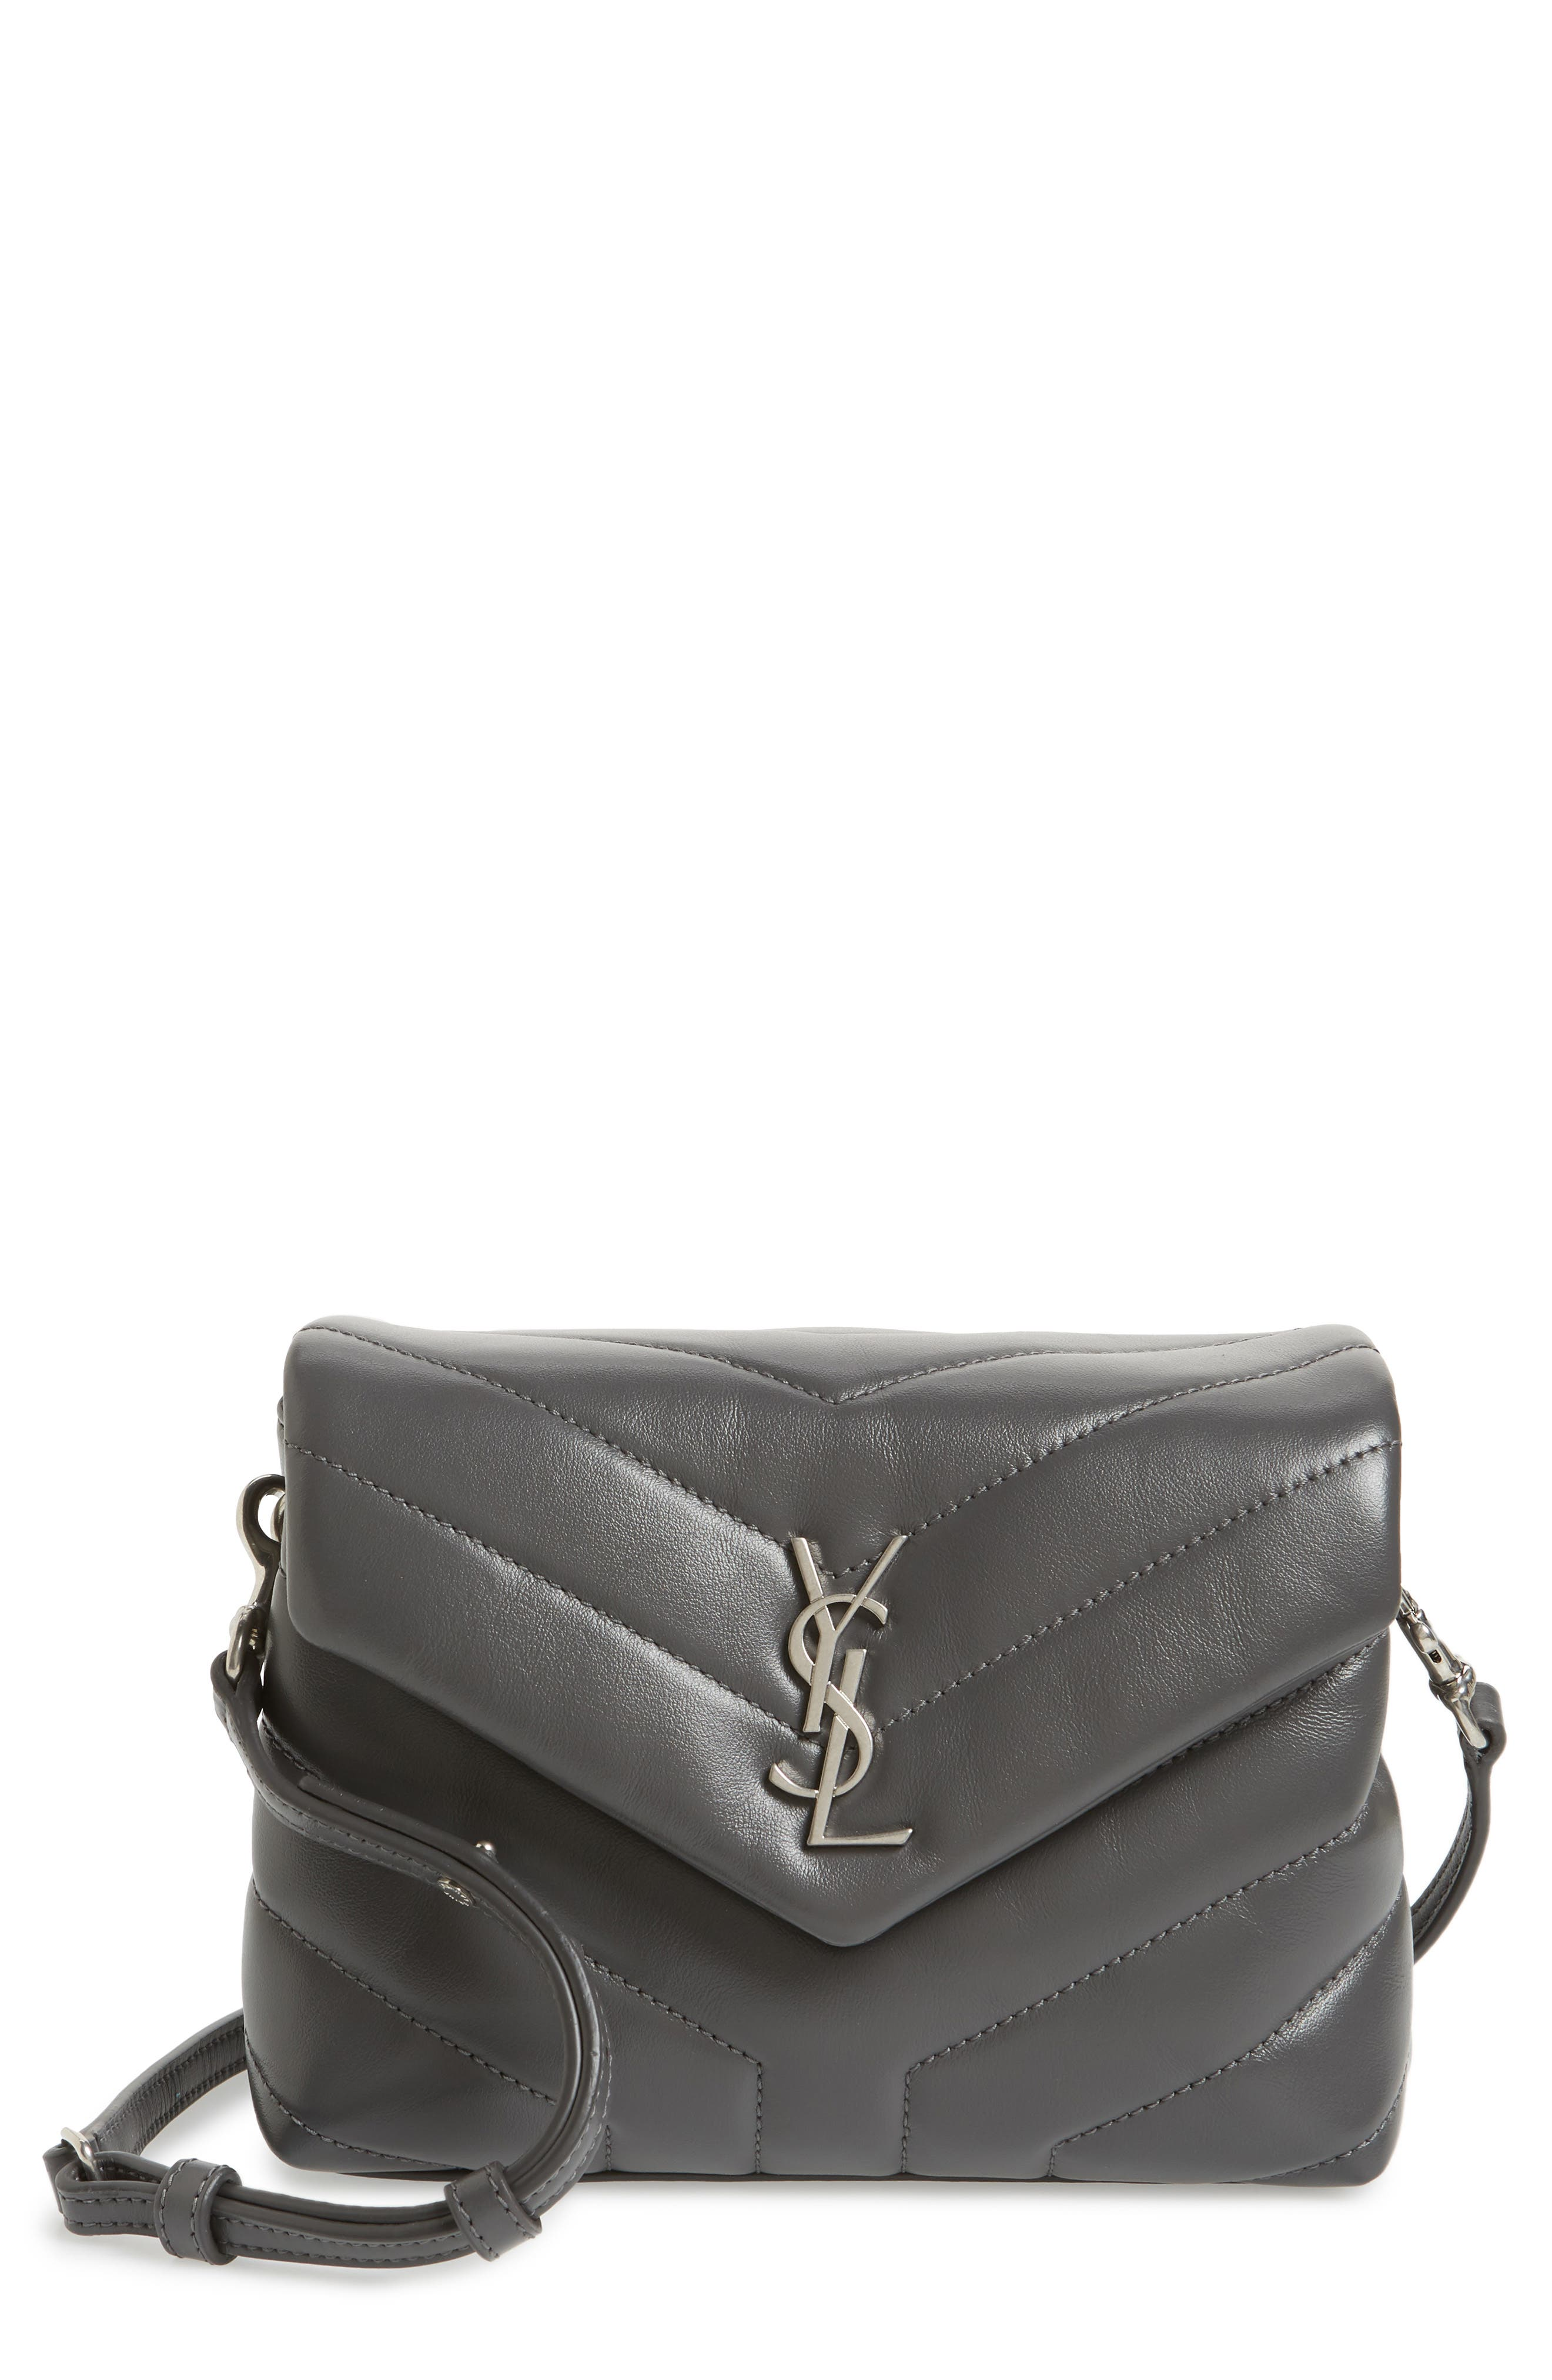 Toy Loulou Calfskin Leather Crossbody Bag,                         Main,                         color, STORM